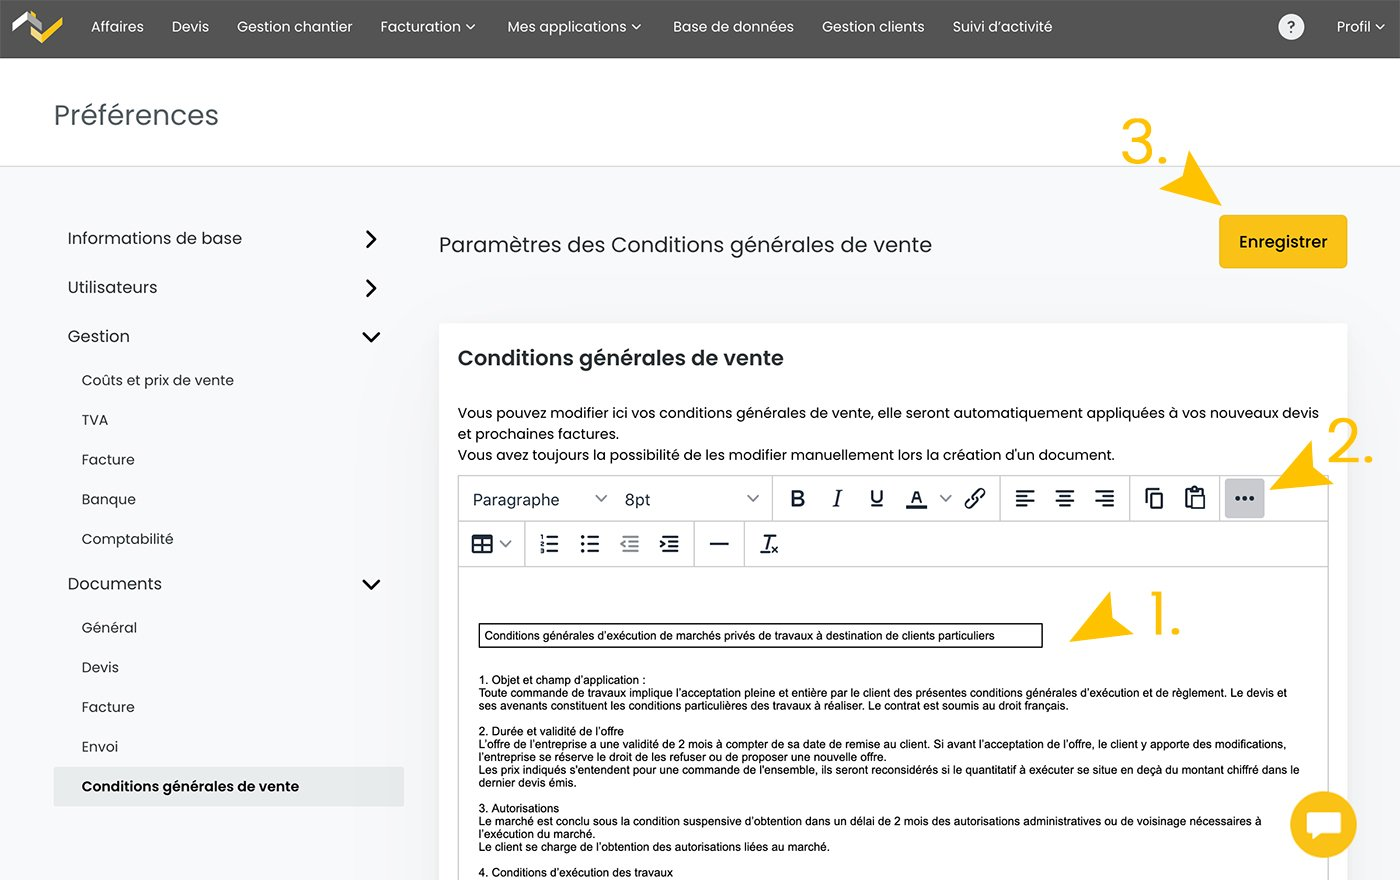 Image tuto - Conditions de vente - 2 - MAJ